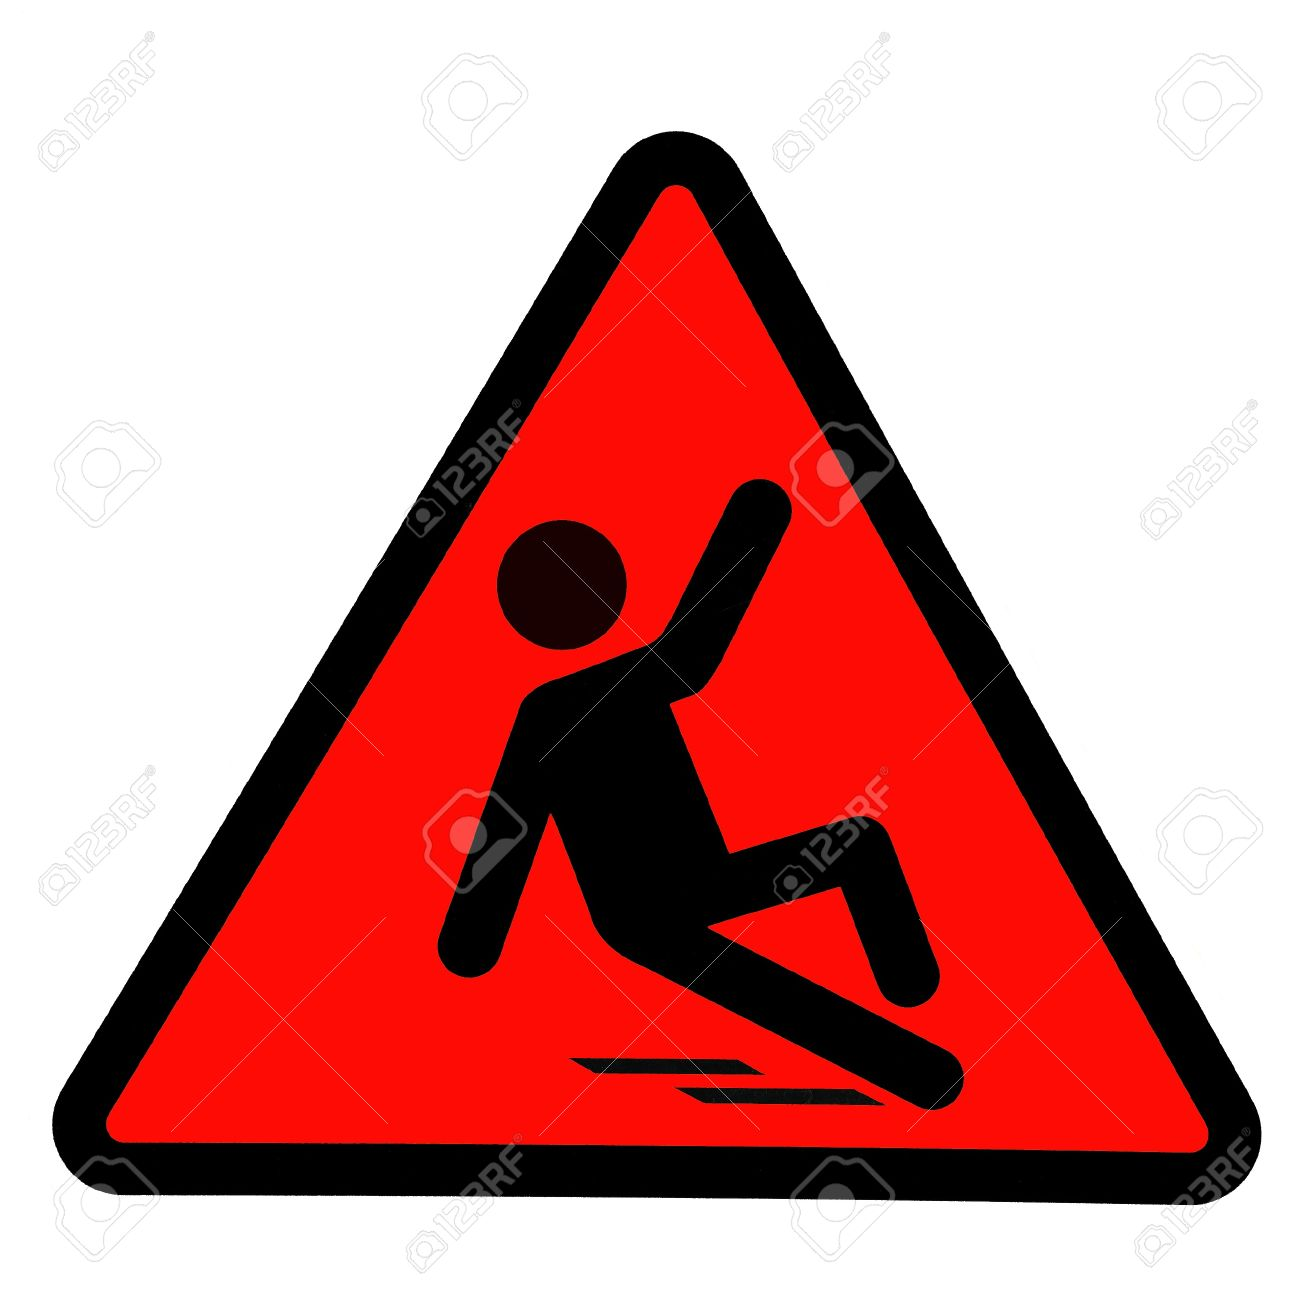 Beware Slippery Symbol Stock Photos & Pictures. Royalty Free ...